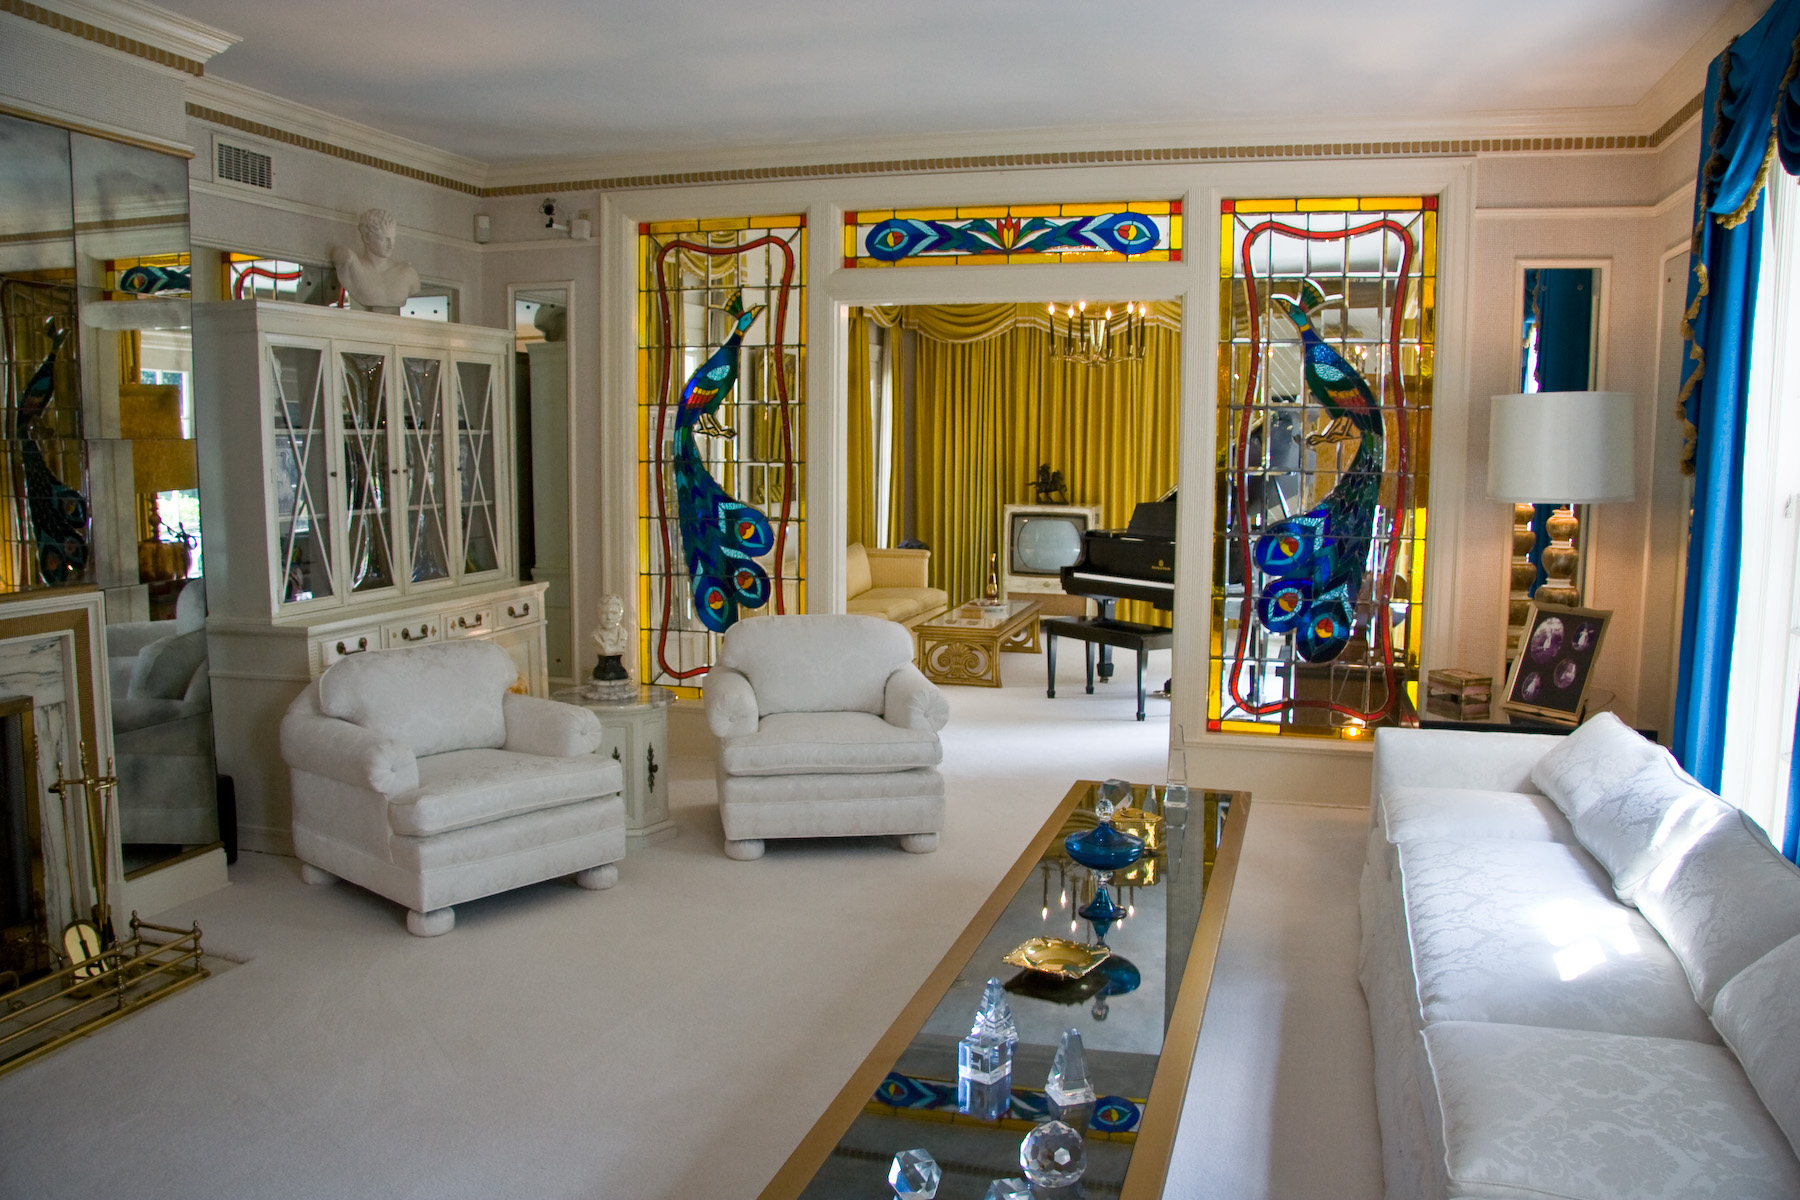 File graceland living room wikimedia commons for House inside images